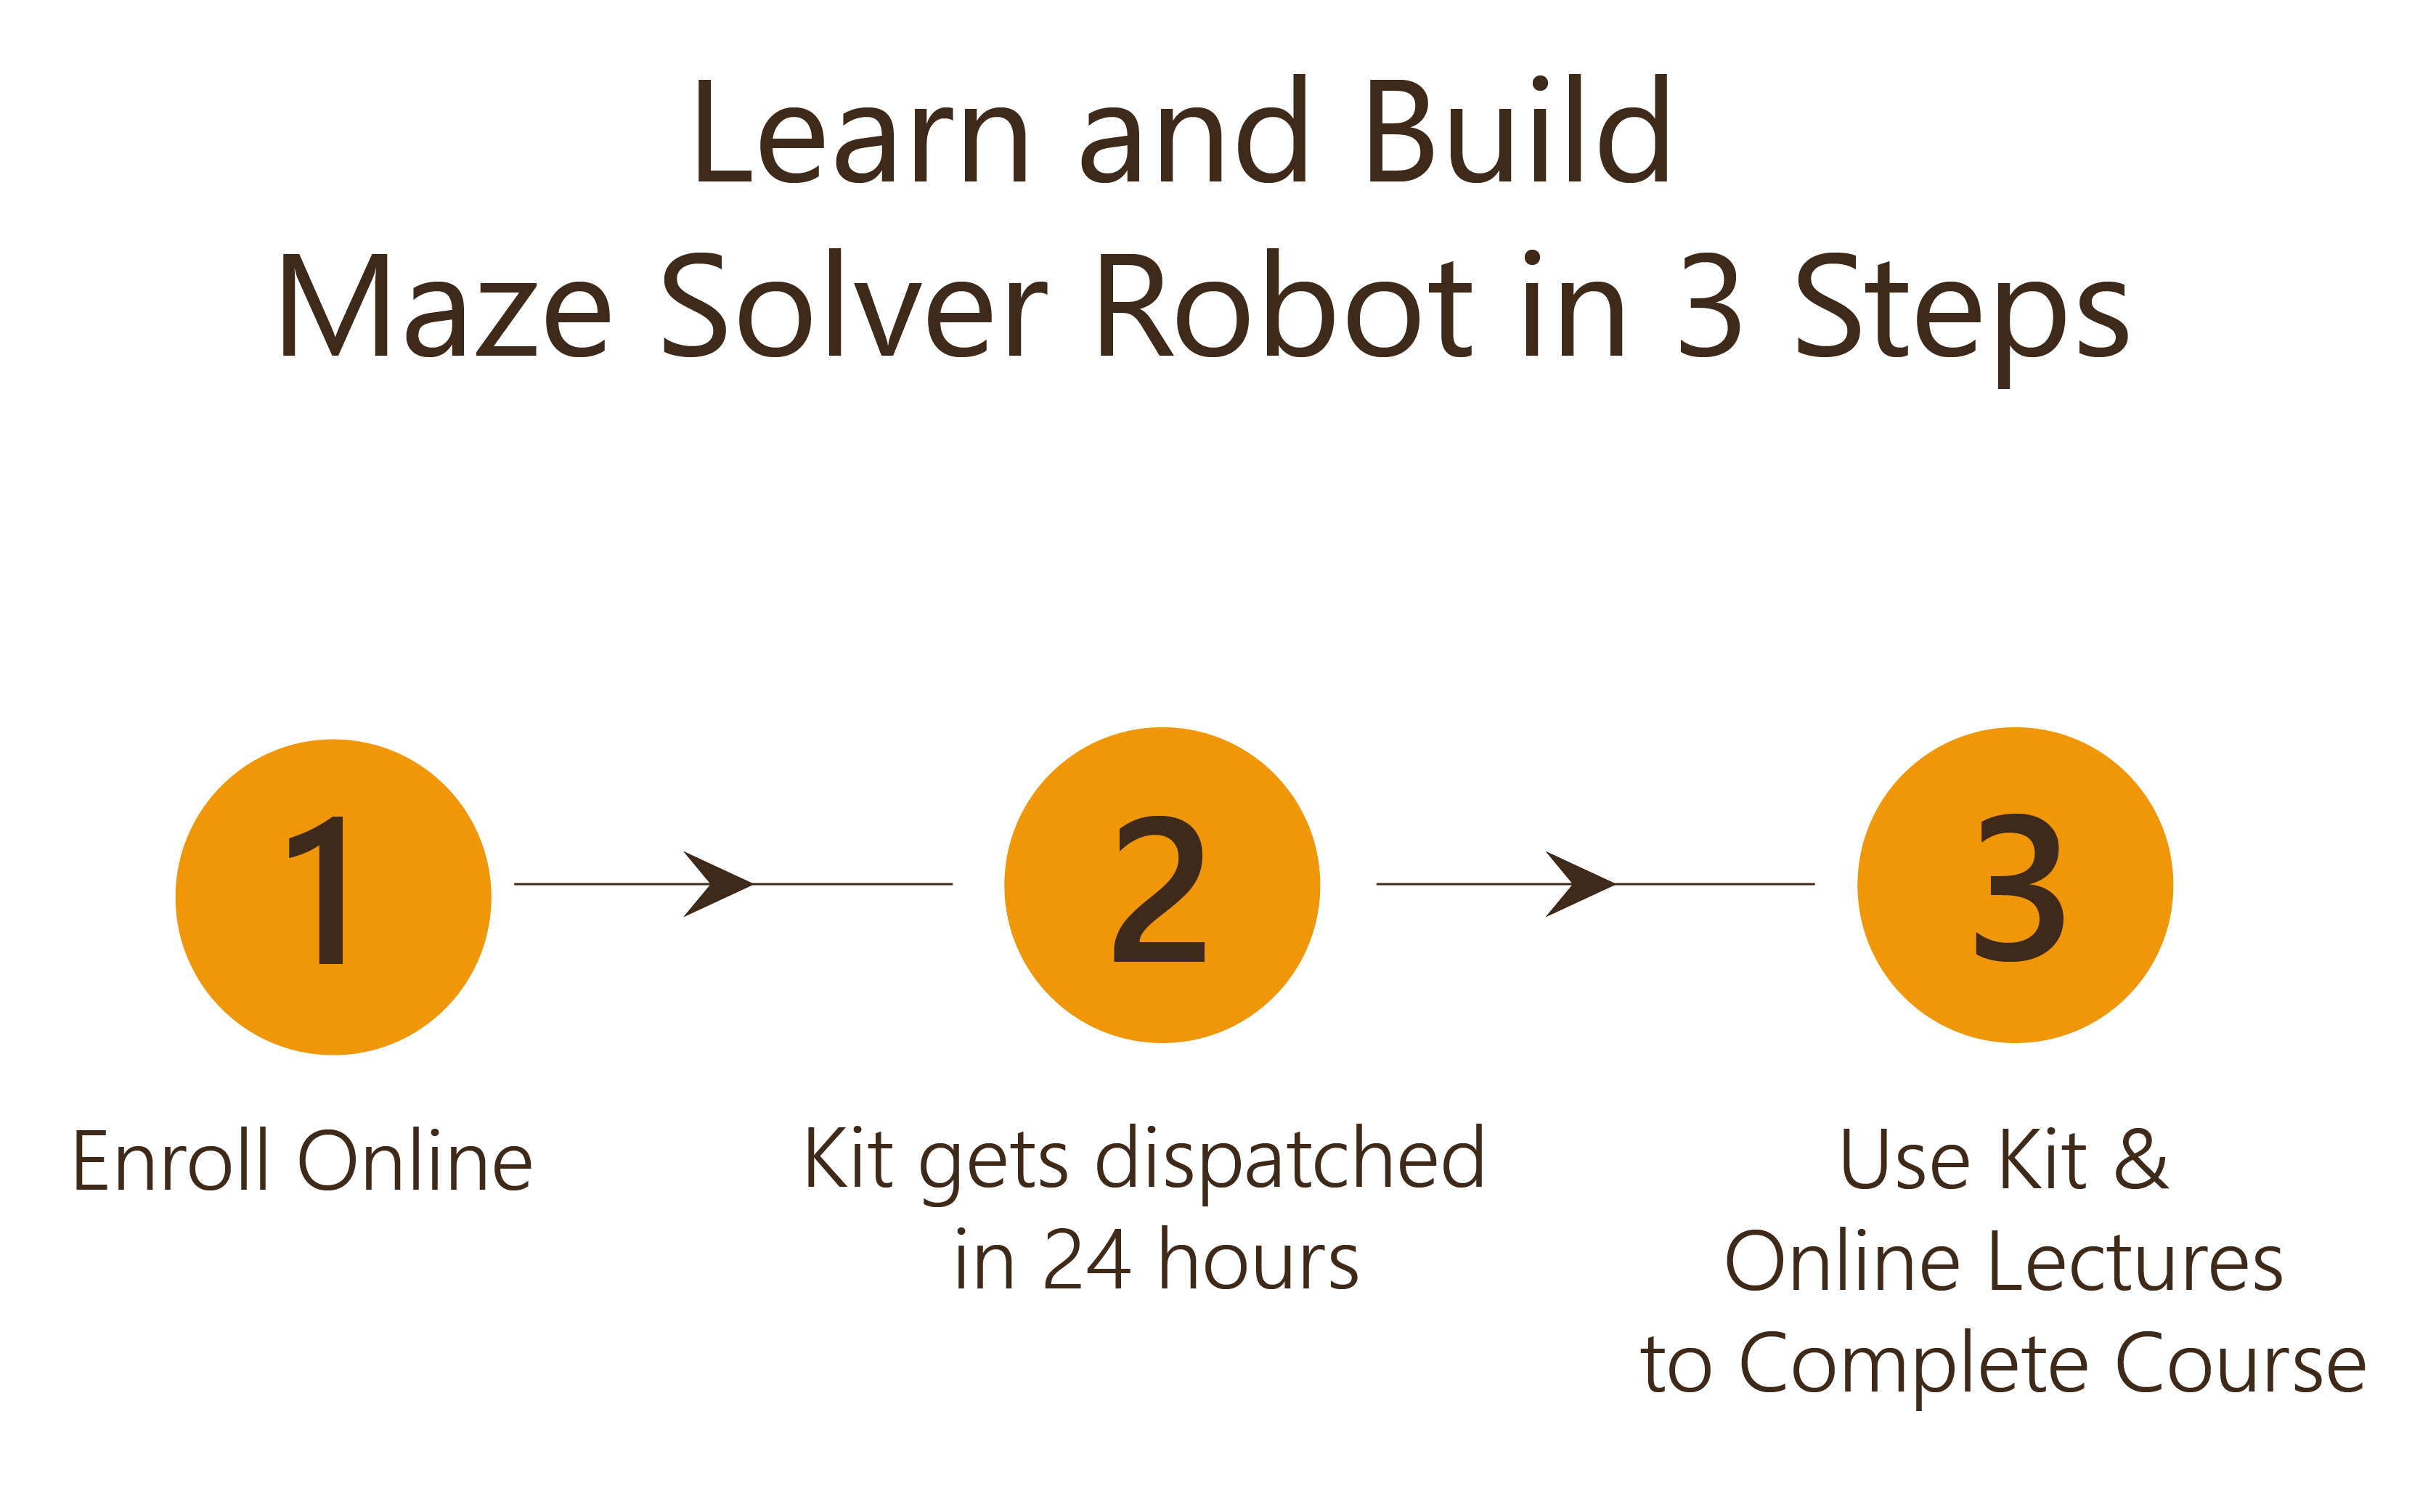 Learn and Build Maze Solver Robots in 3 Steps